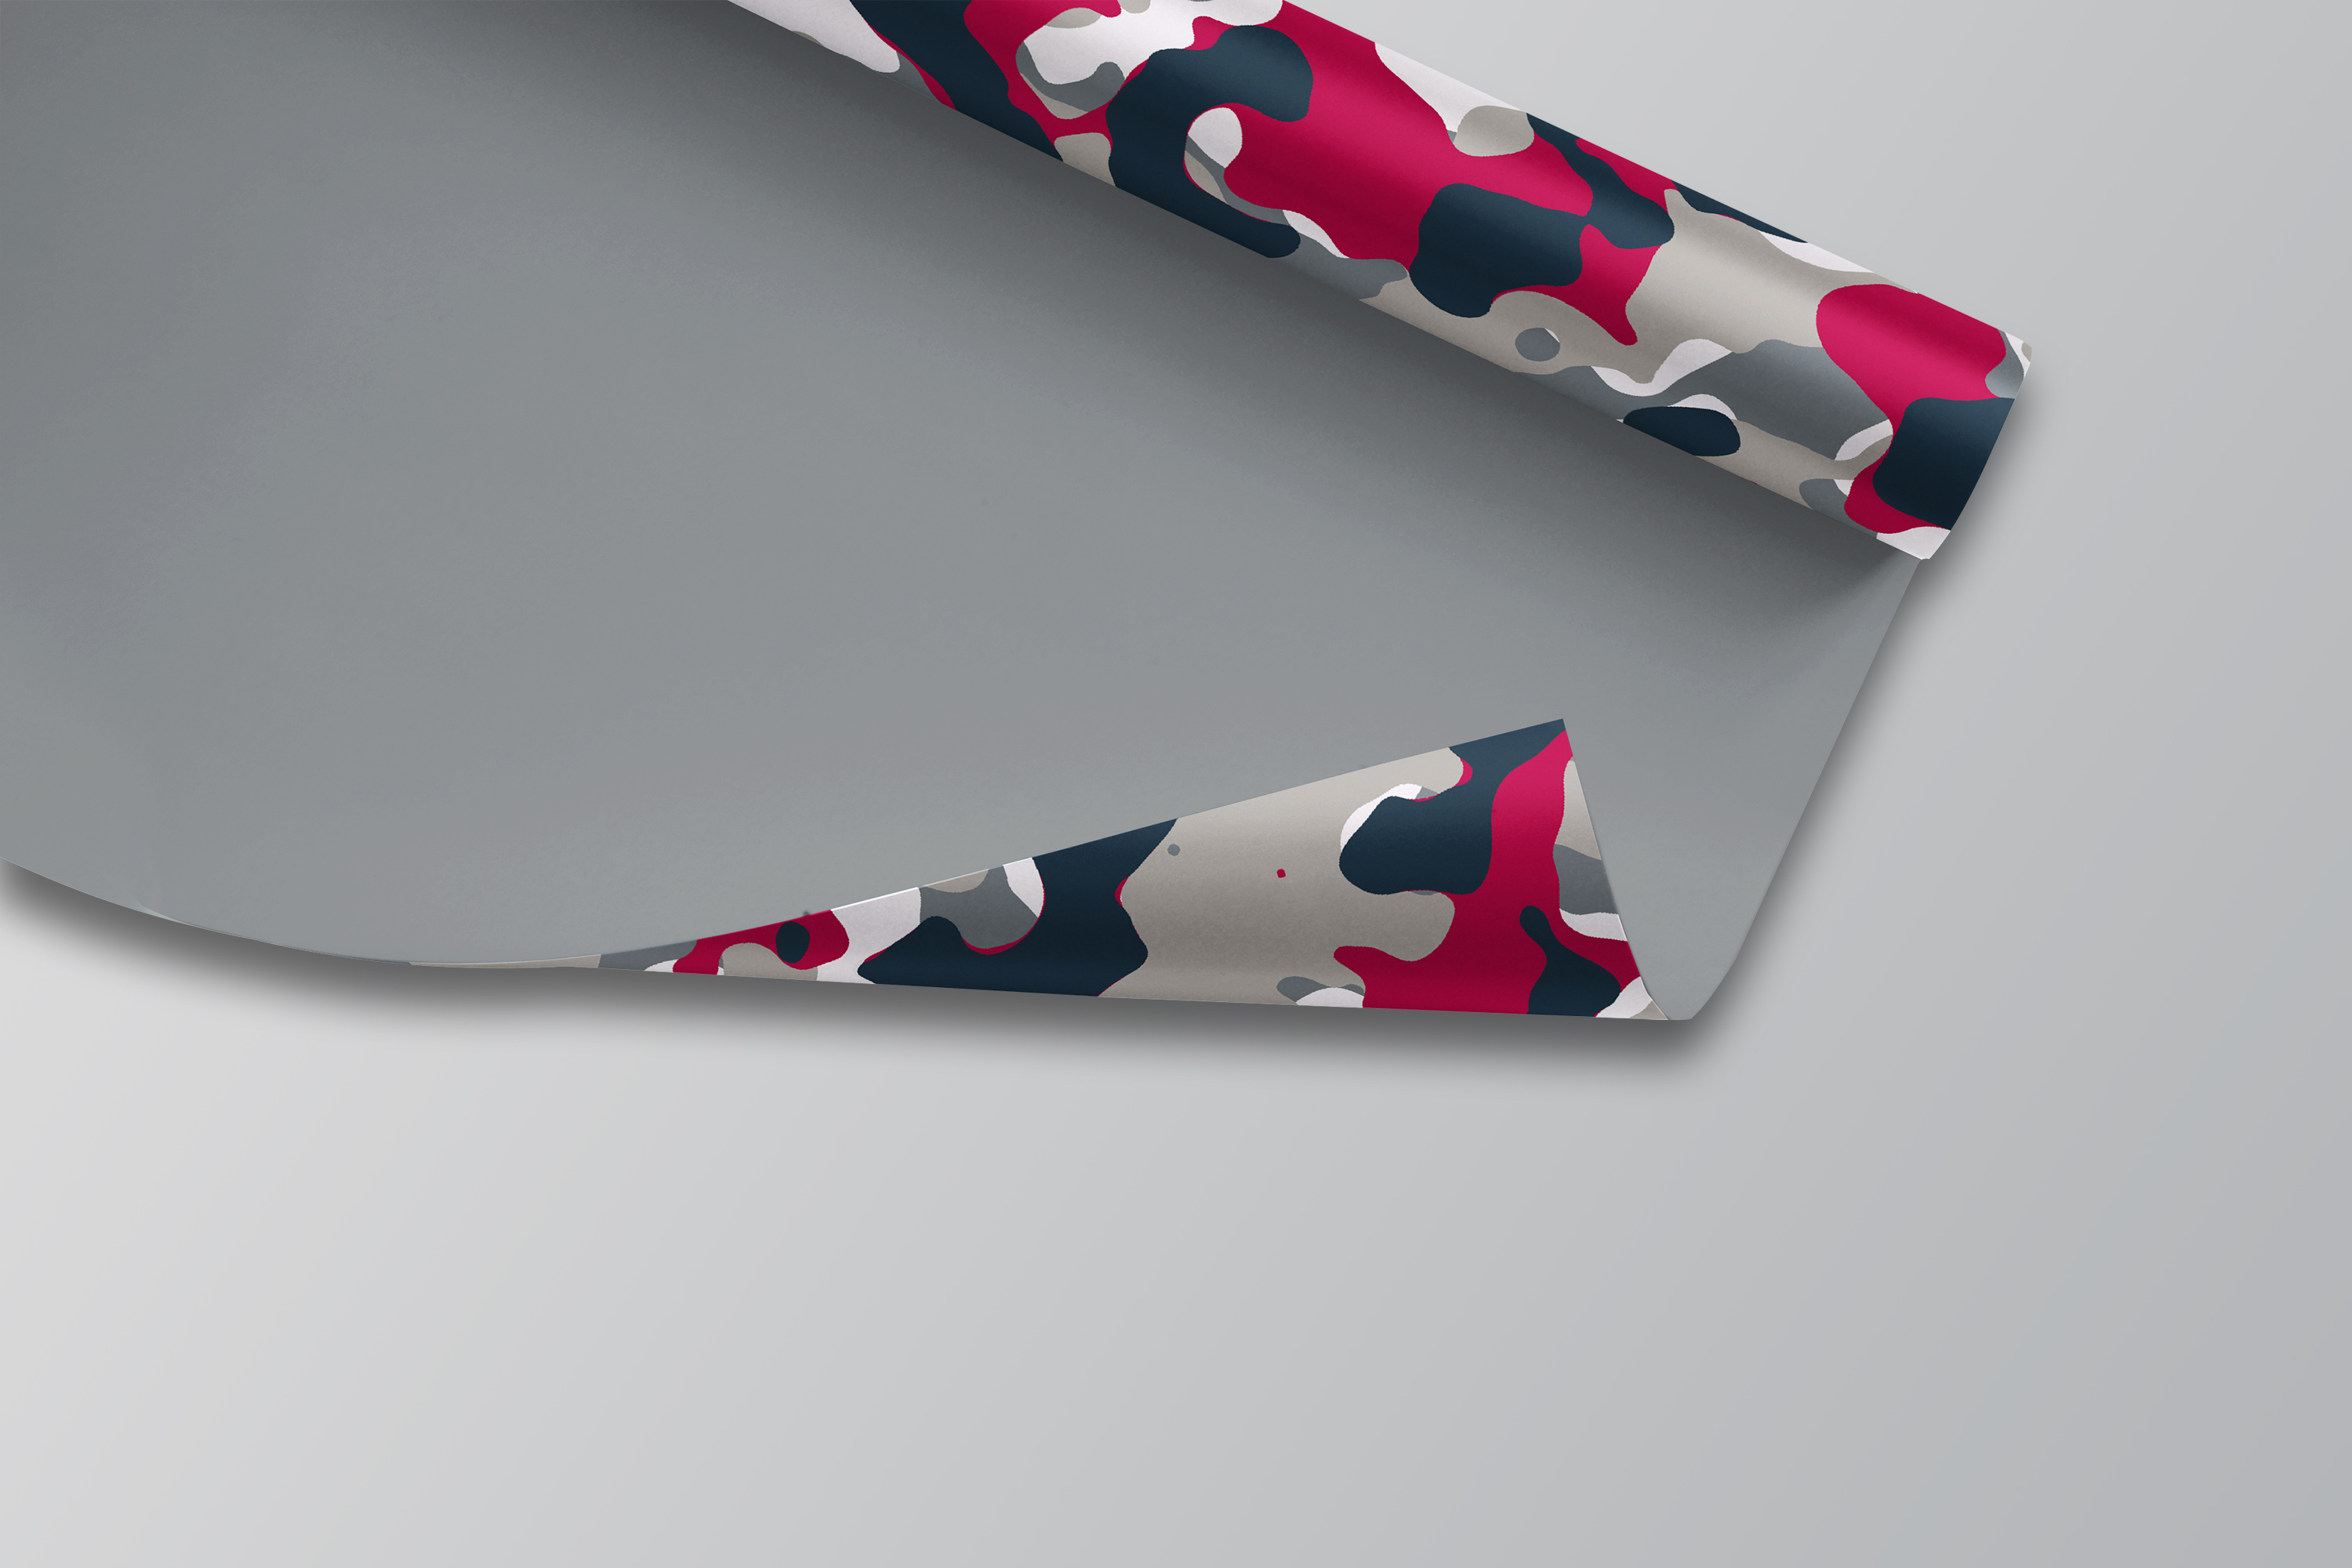 40 Alternative Camouflage Paper Designs example image 5